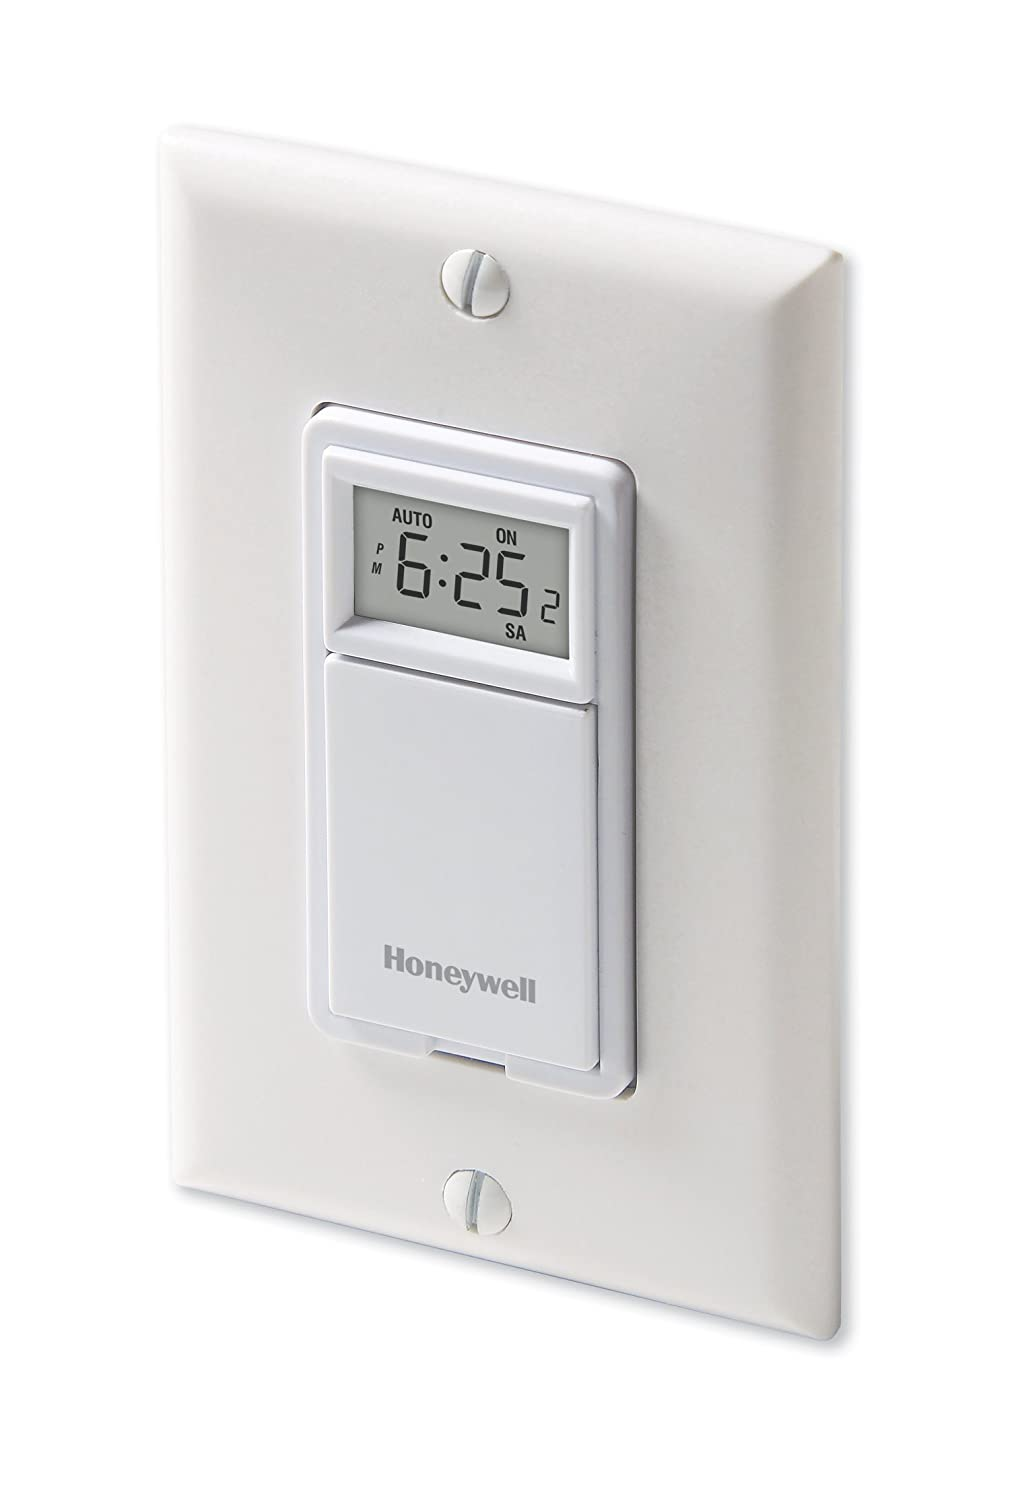 Amazon.com: Honeywell RPLS730B1000/U 7-Day Programmable Light Switch ...